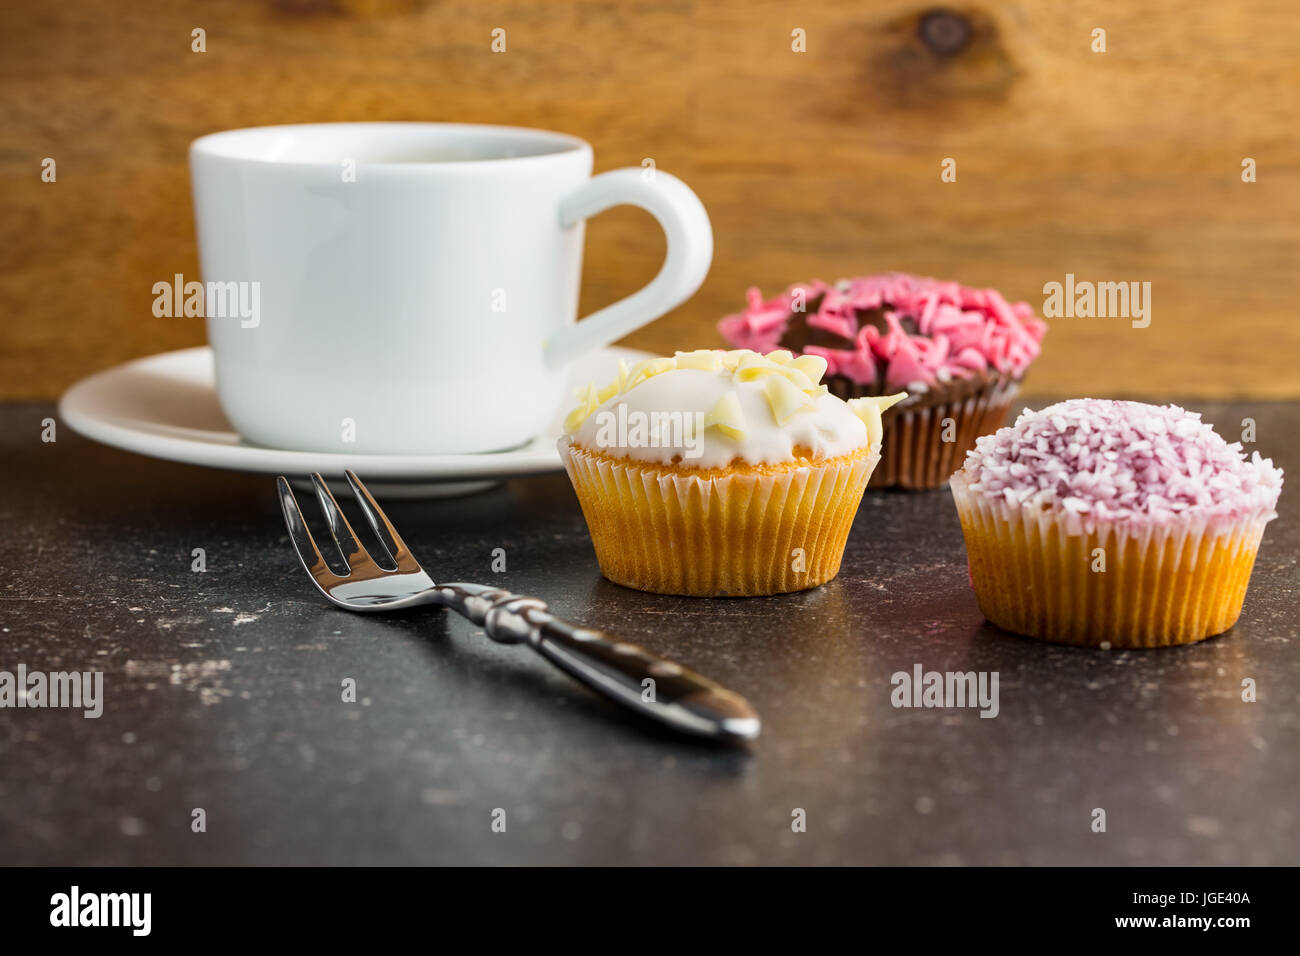 Tasty sweet cupcakes and coffee cup. - Stock Image